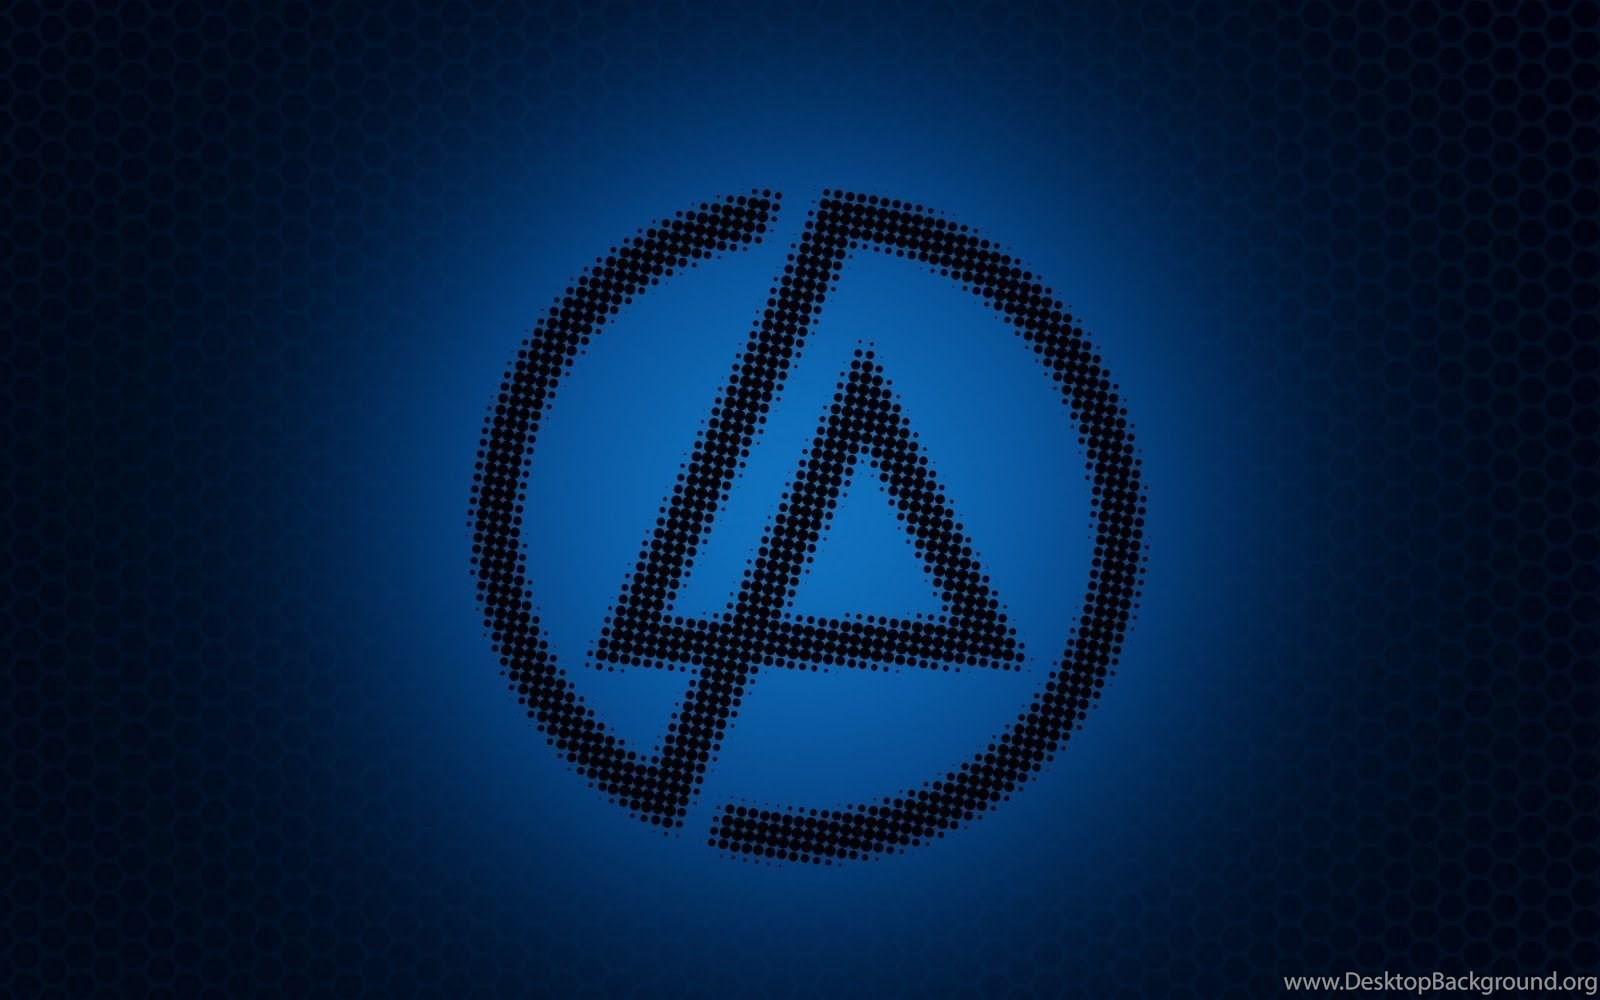 Linkin Park Wallpapers For Android 49011 Full Hd Wallpapers